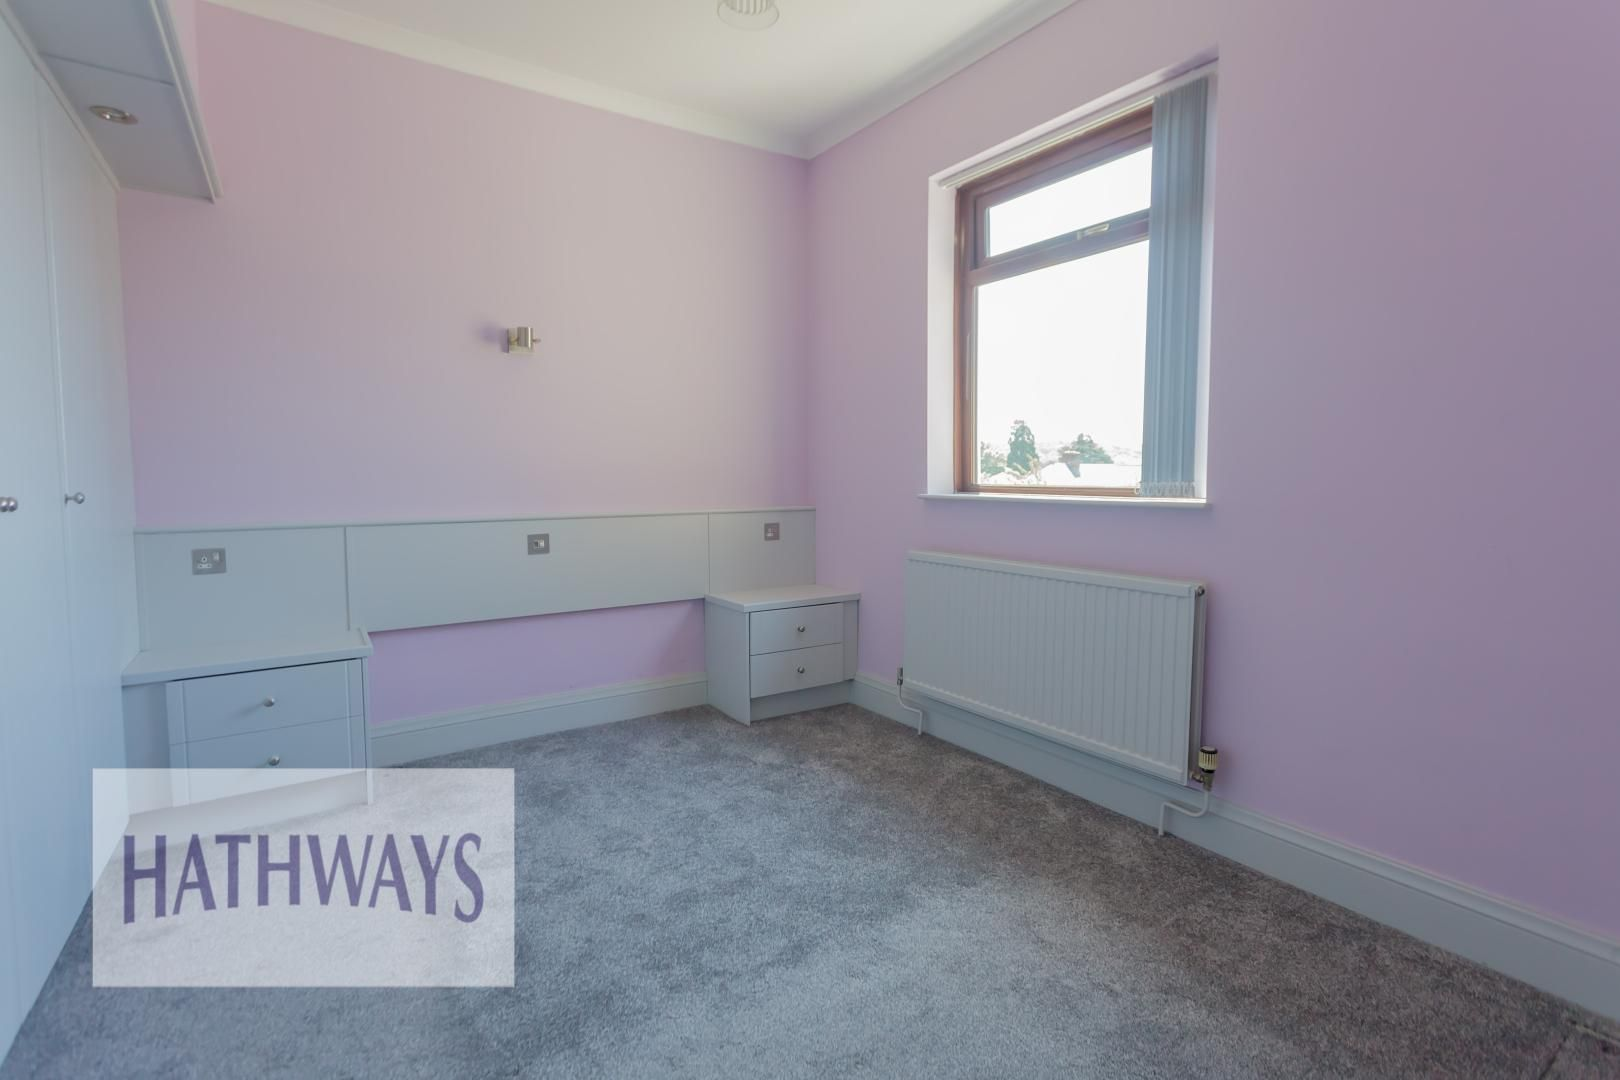 4 bed house for sale in Station Road  - Property Image 46